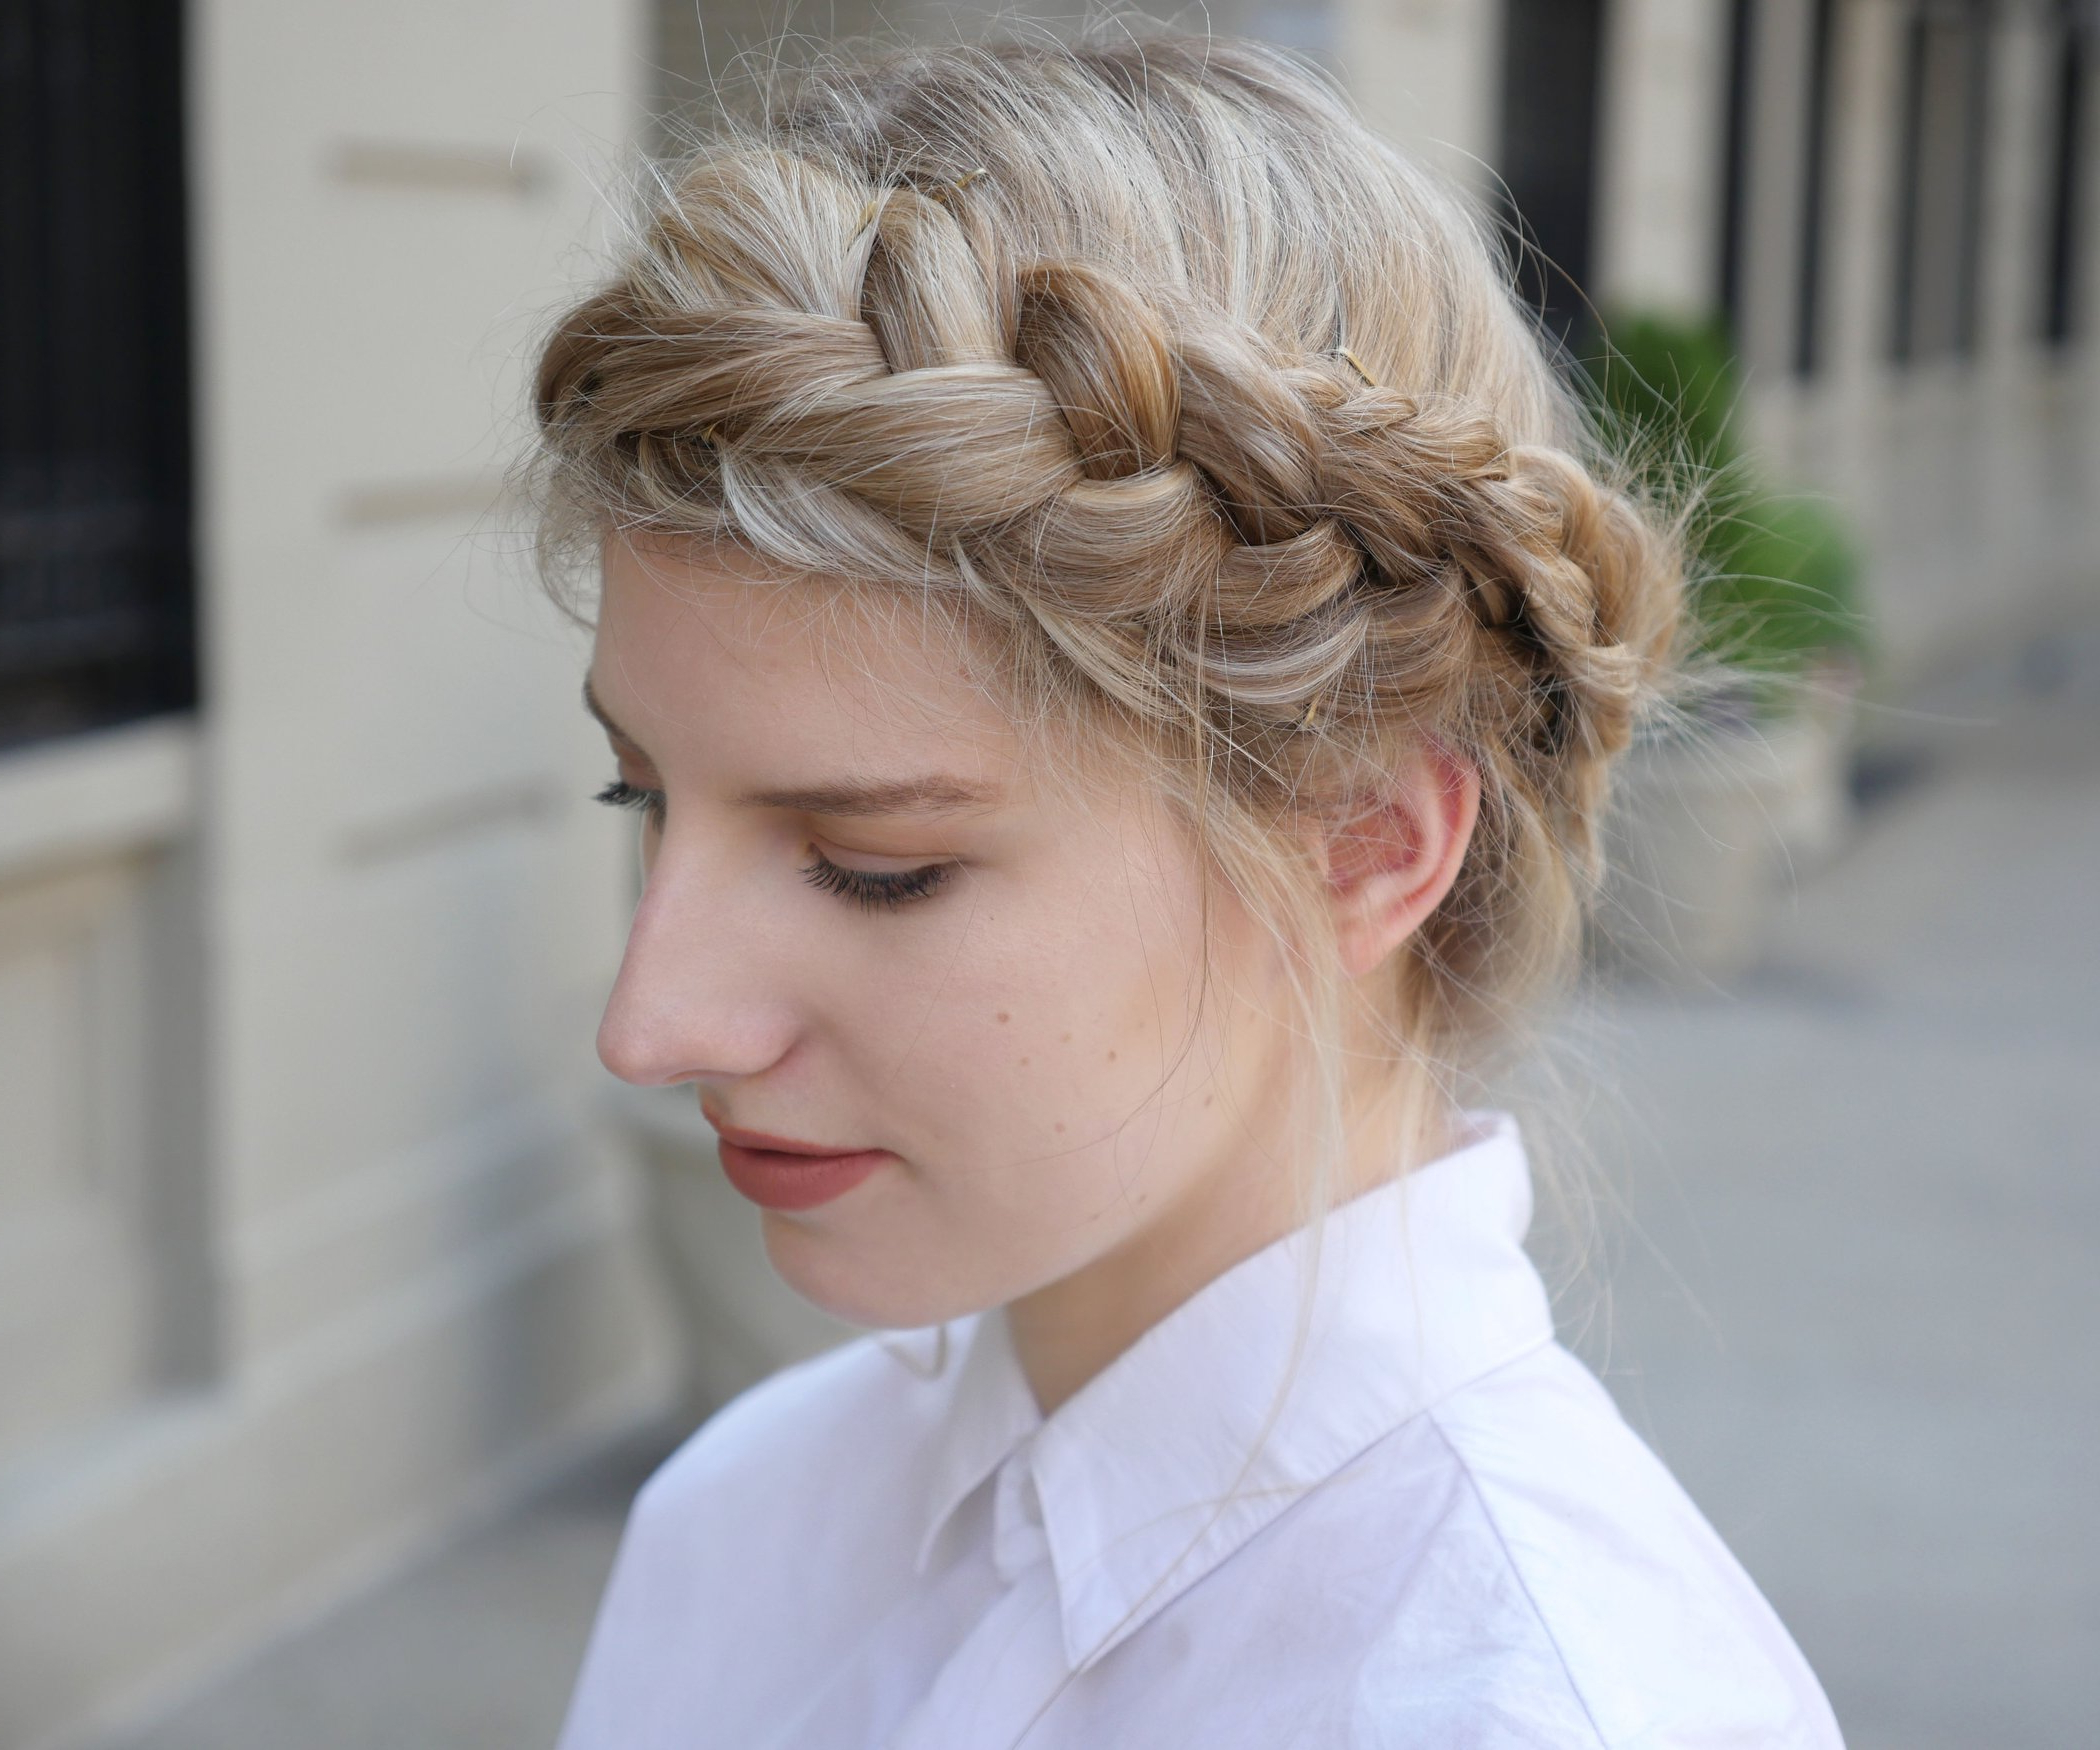 Most Popular Cascading Curly Crown Braid Hairstyles In 20 Royal And Charismatic Crown Braid Hairstyles – Haircuts (View 13 of 20)